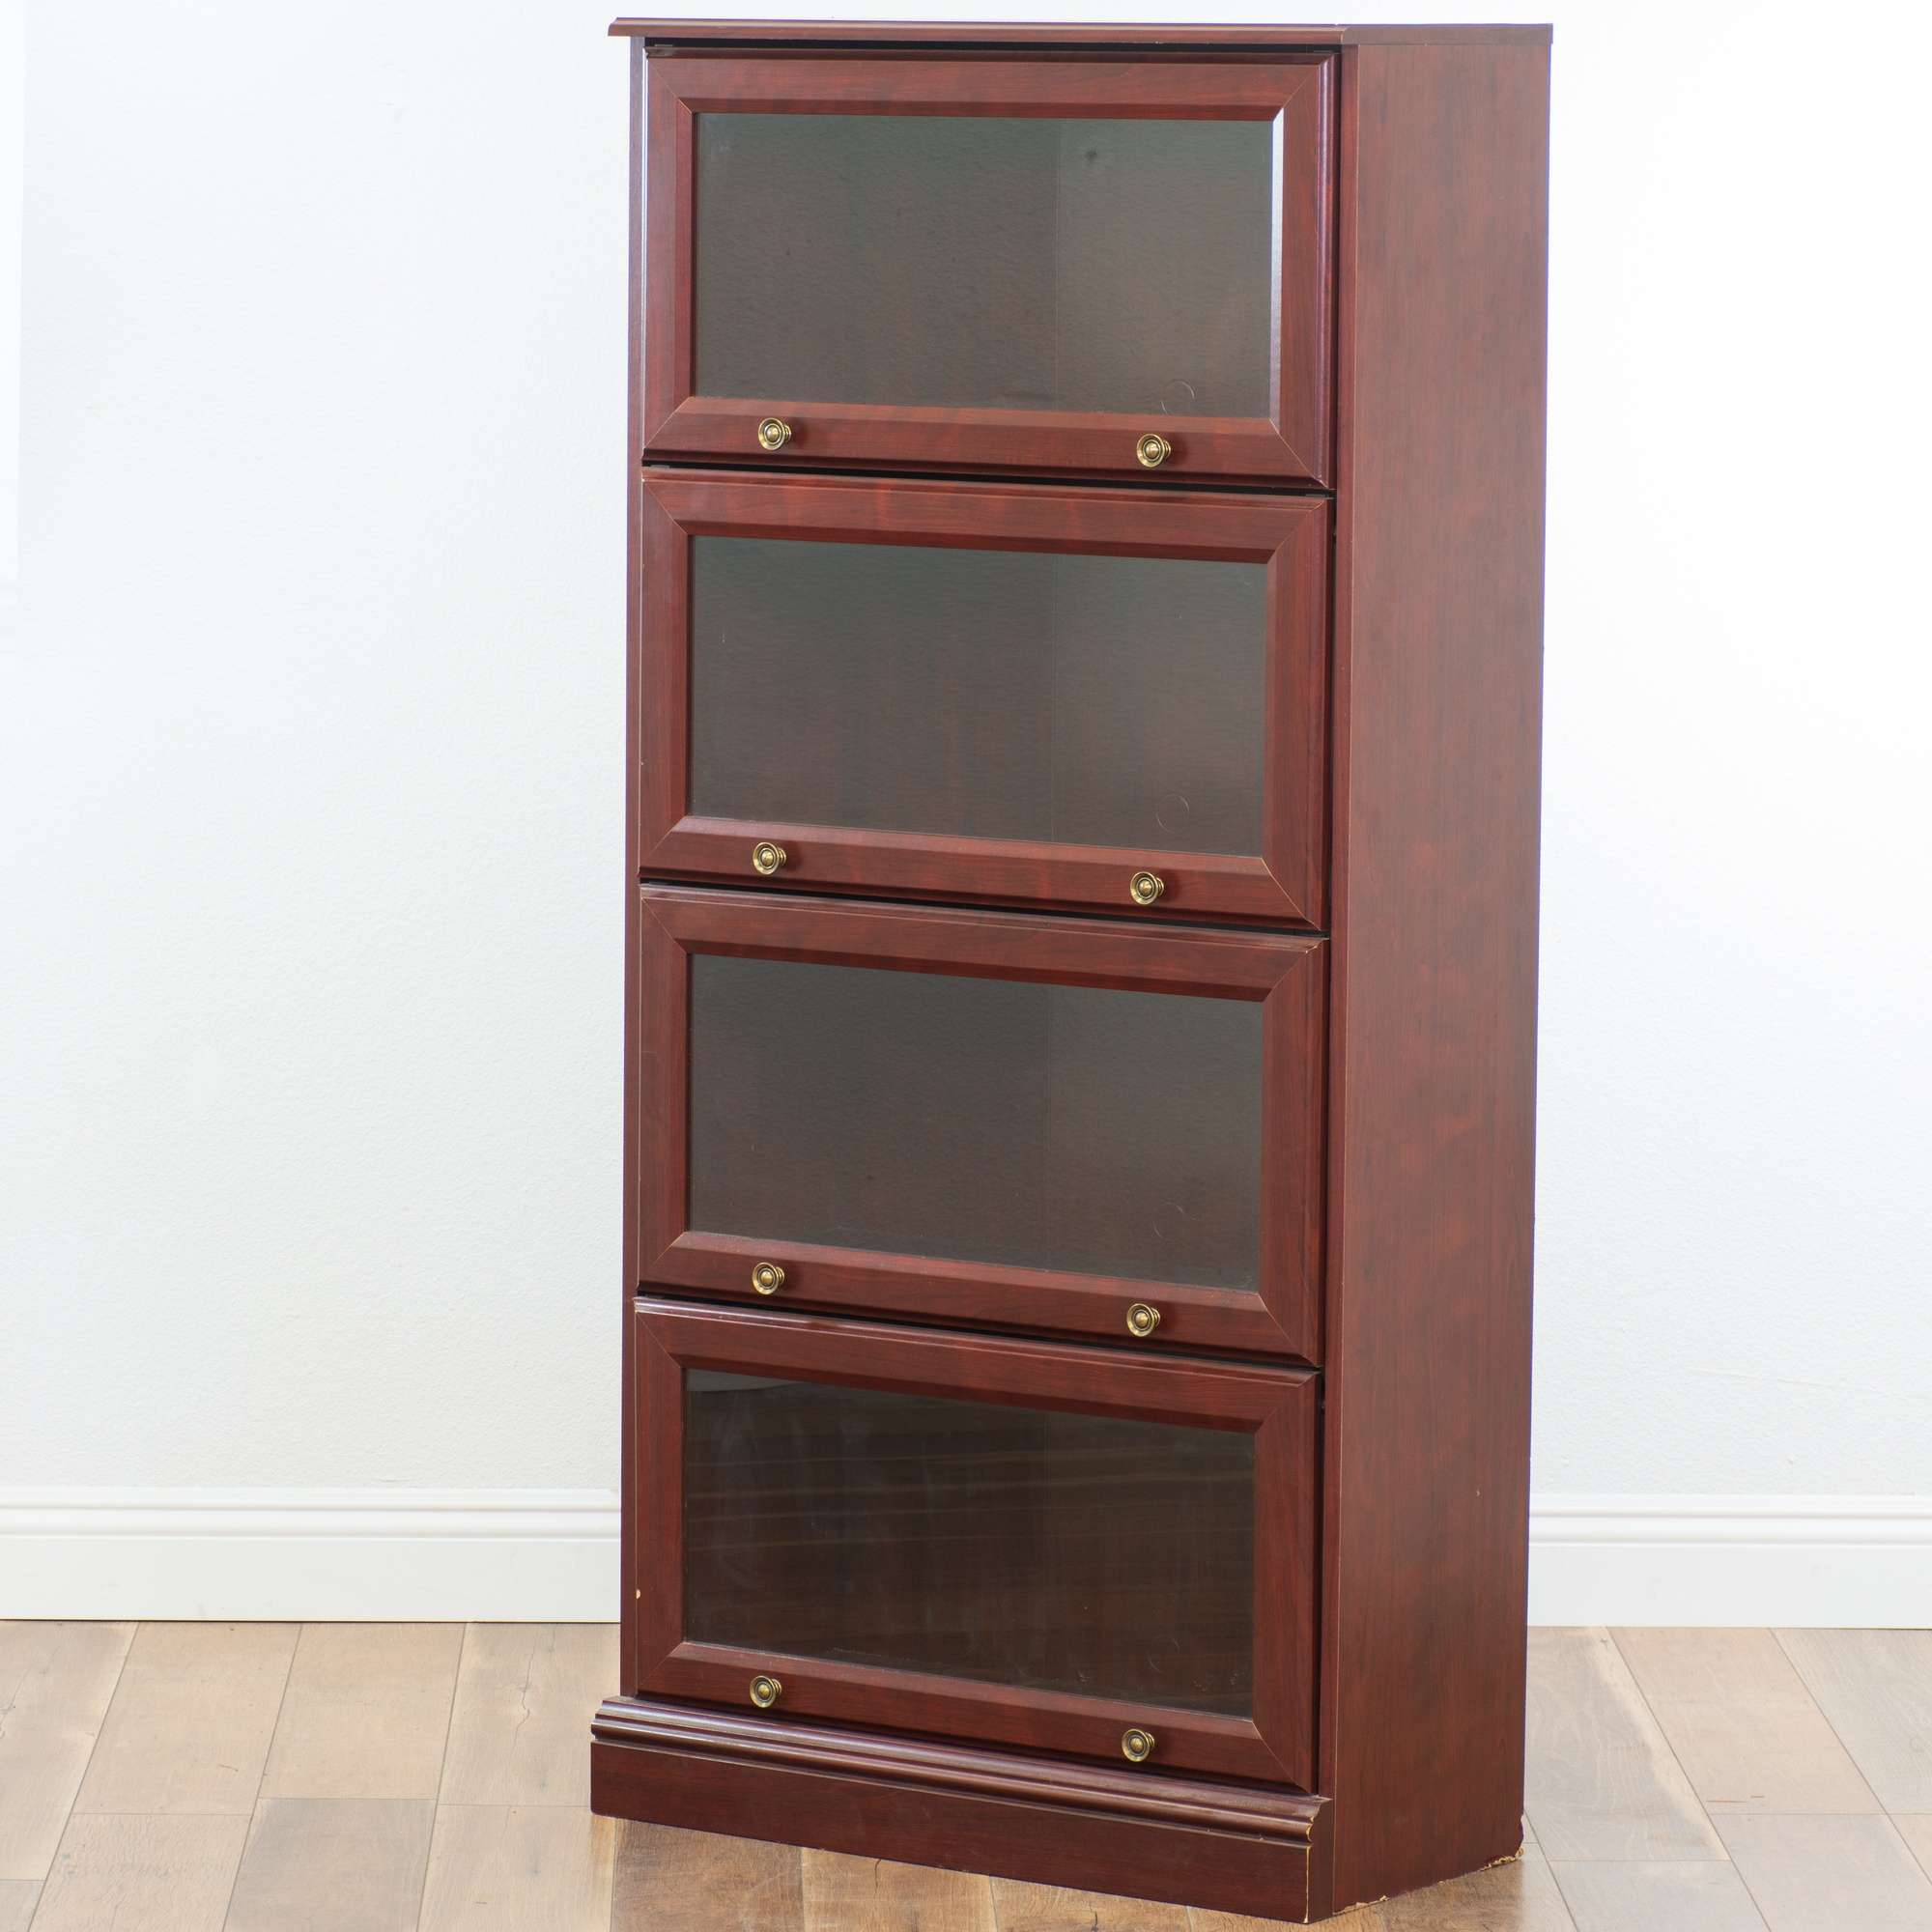 Contemporary Cherry Veneer 4 Shelf Barrister Bookcase